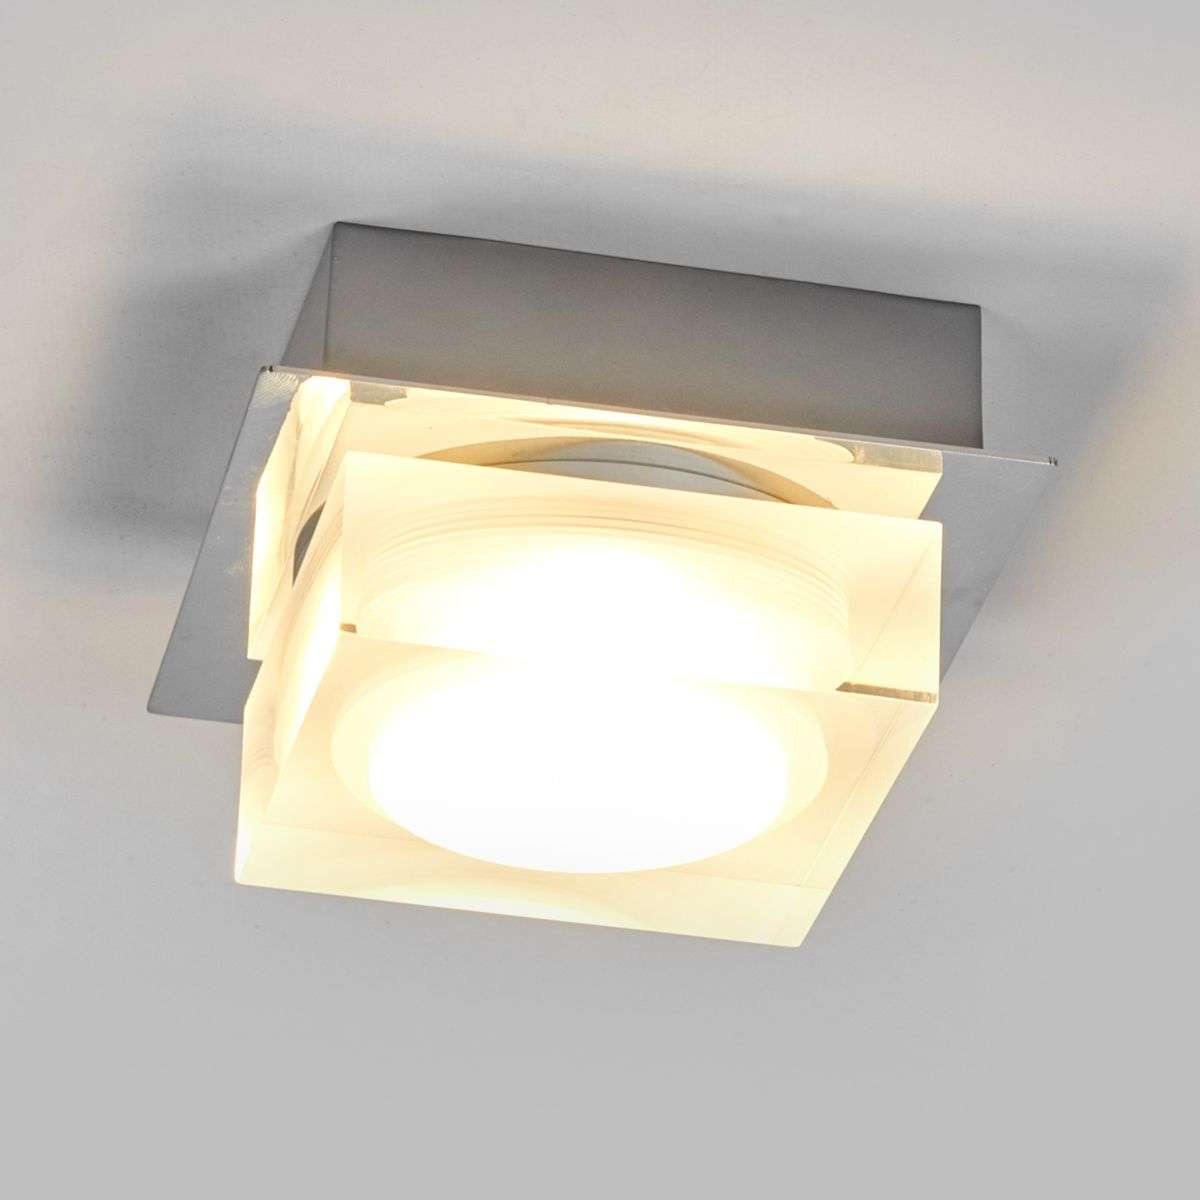 Compra l mpara led de techo birte decorativa para ba os for Lamparas para bano techo